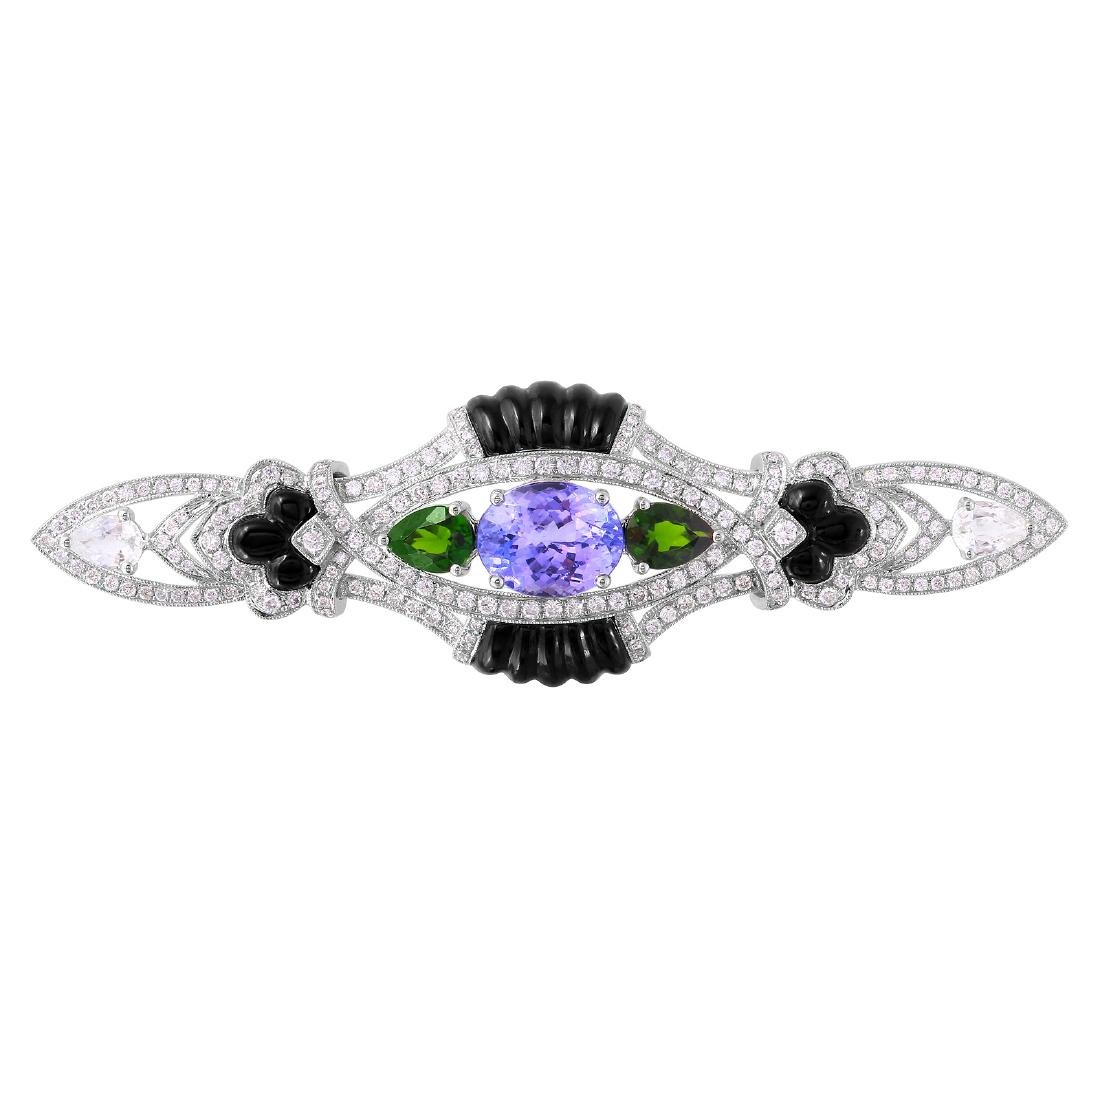 18KT White Gold Gemstone Brooch